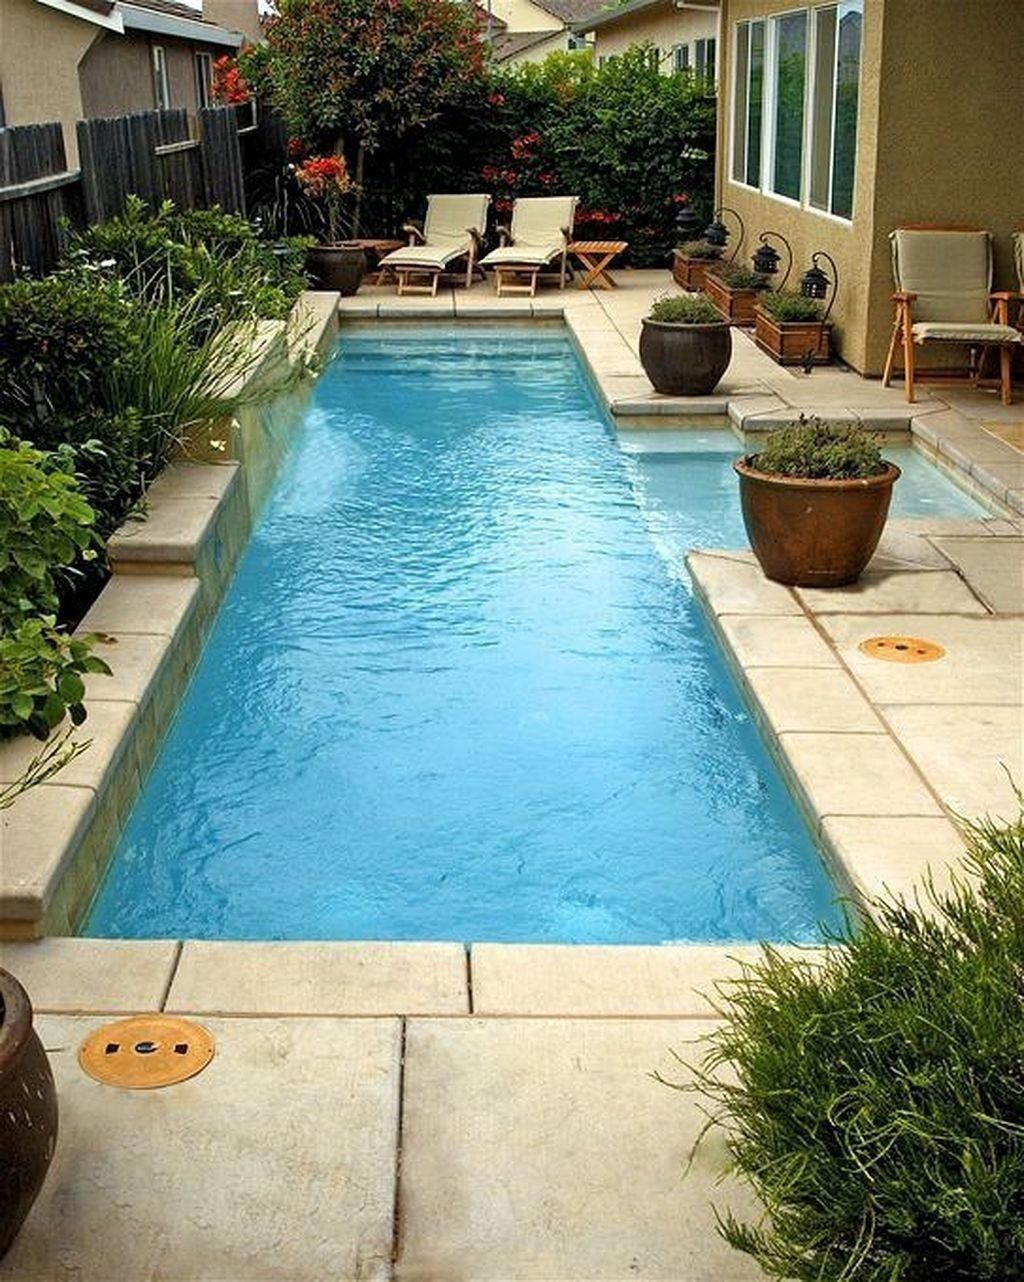 Small Backyard Inground Pool Ideas Small Pool Design Backyard Pool Designs Swimming Pools Backyard